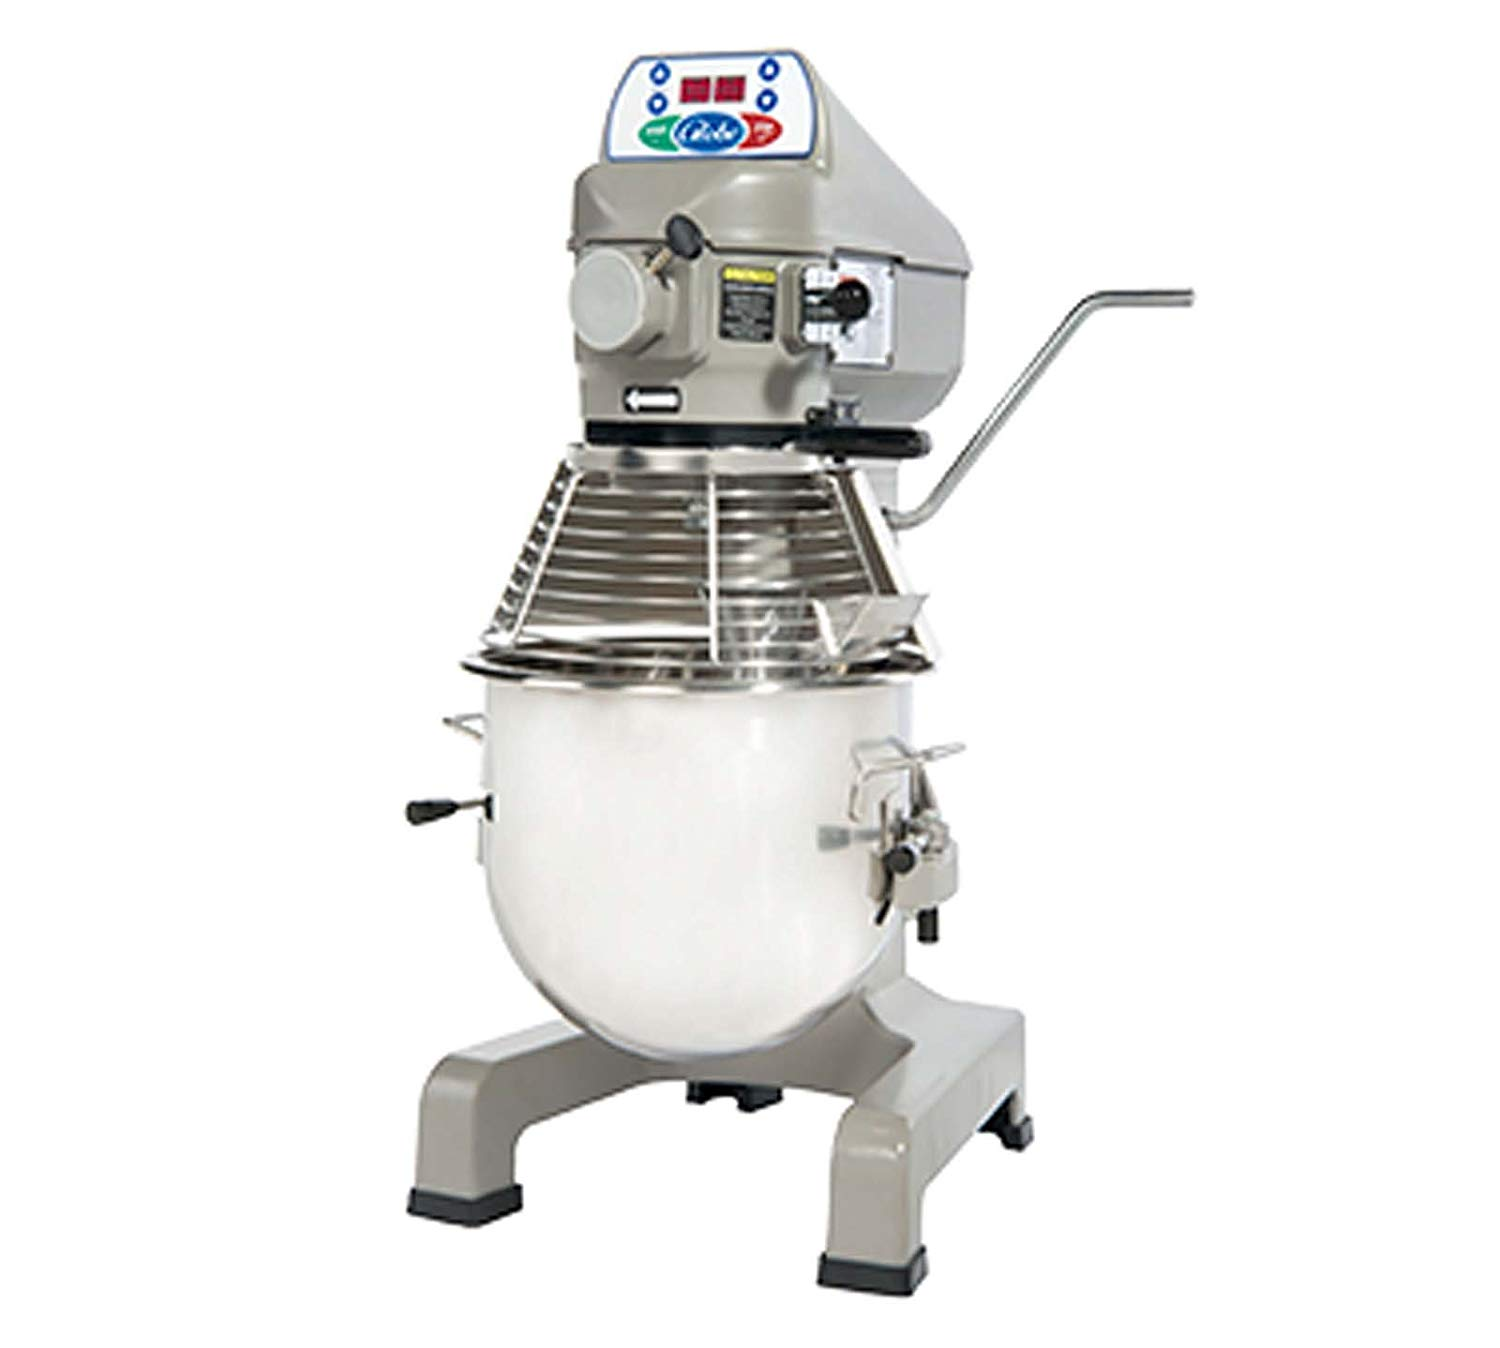 Commercial Countertop Mixer Globe Food Sp20 3 Speed 20 Qt Planetary Mixer With